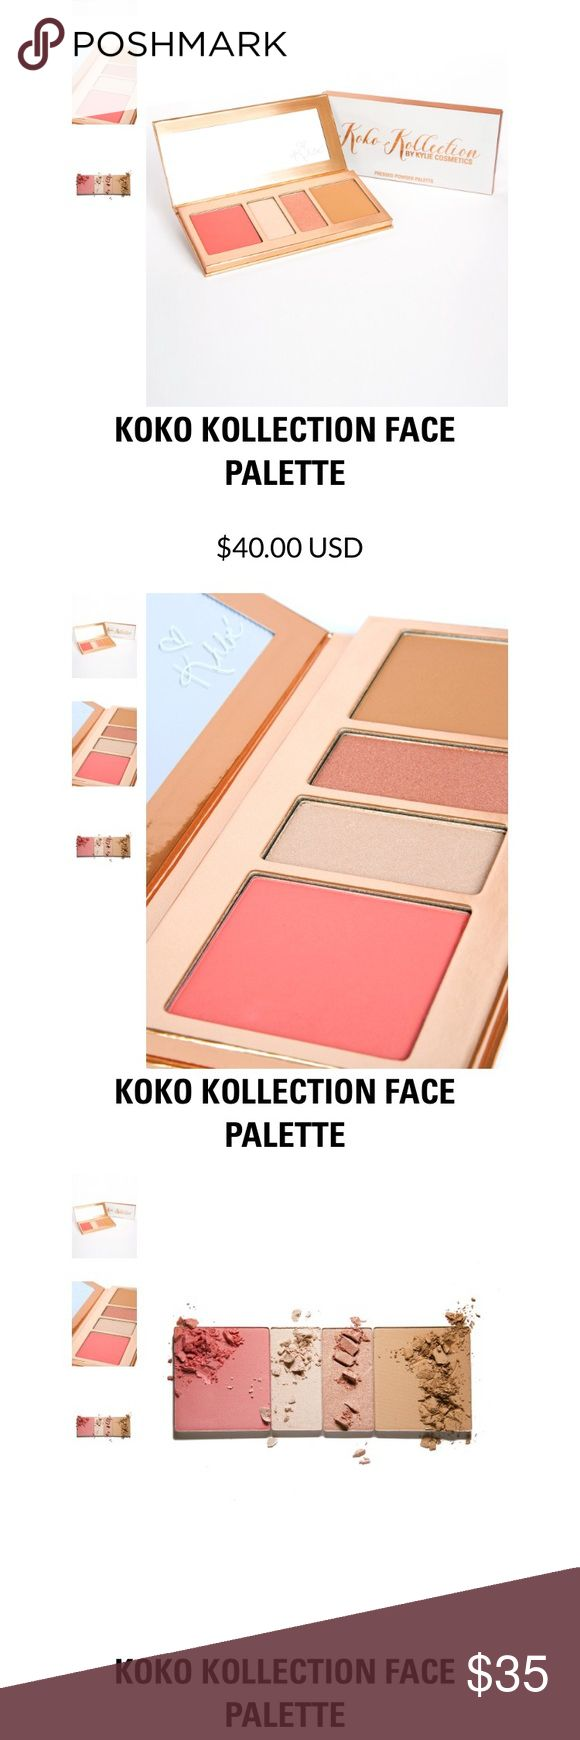 Koko kollection face palette Bought off the Kylie website but I don't use blush. Brand new. These colors are actually very beautiful. Kylie Cosmetics Makeup Blush